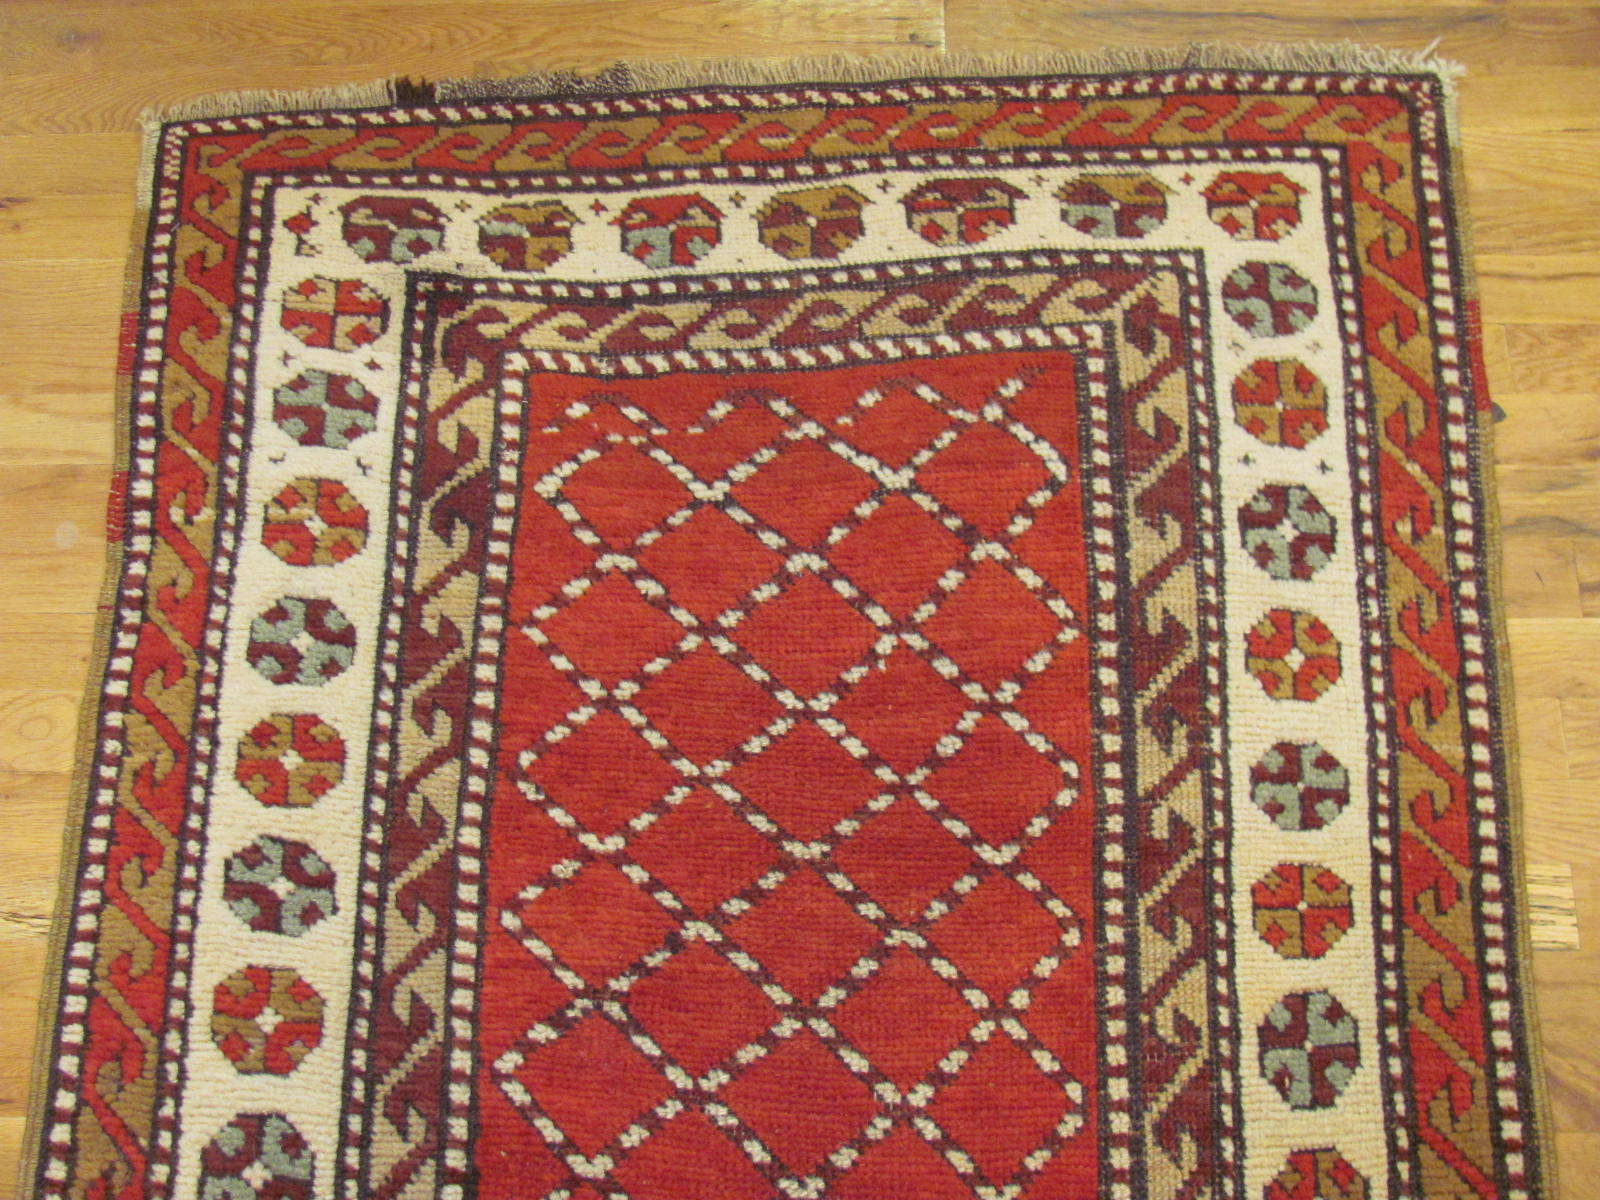 24547 antique persian northwest kurd rug 3,4x7,1 -1